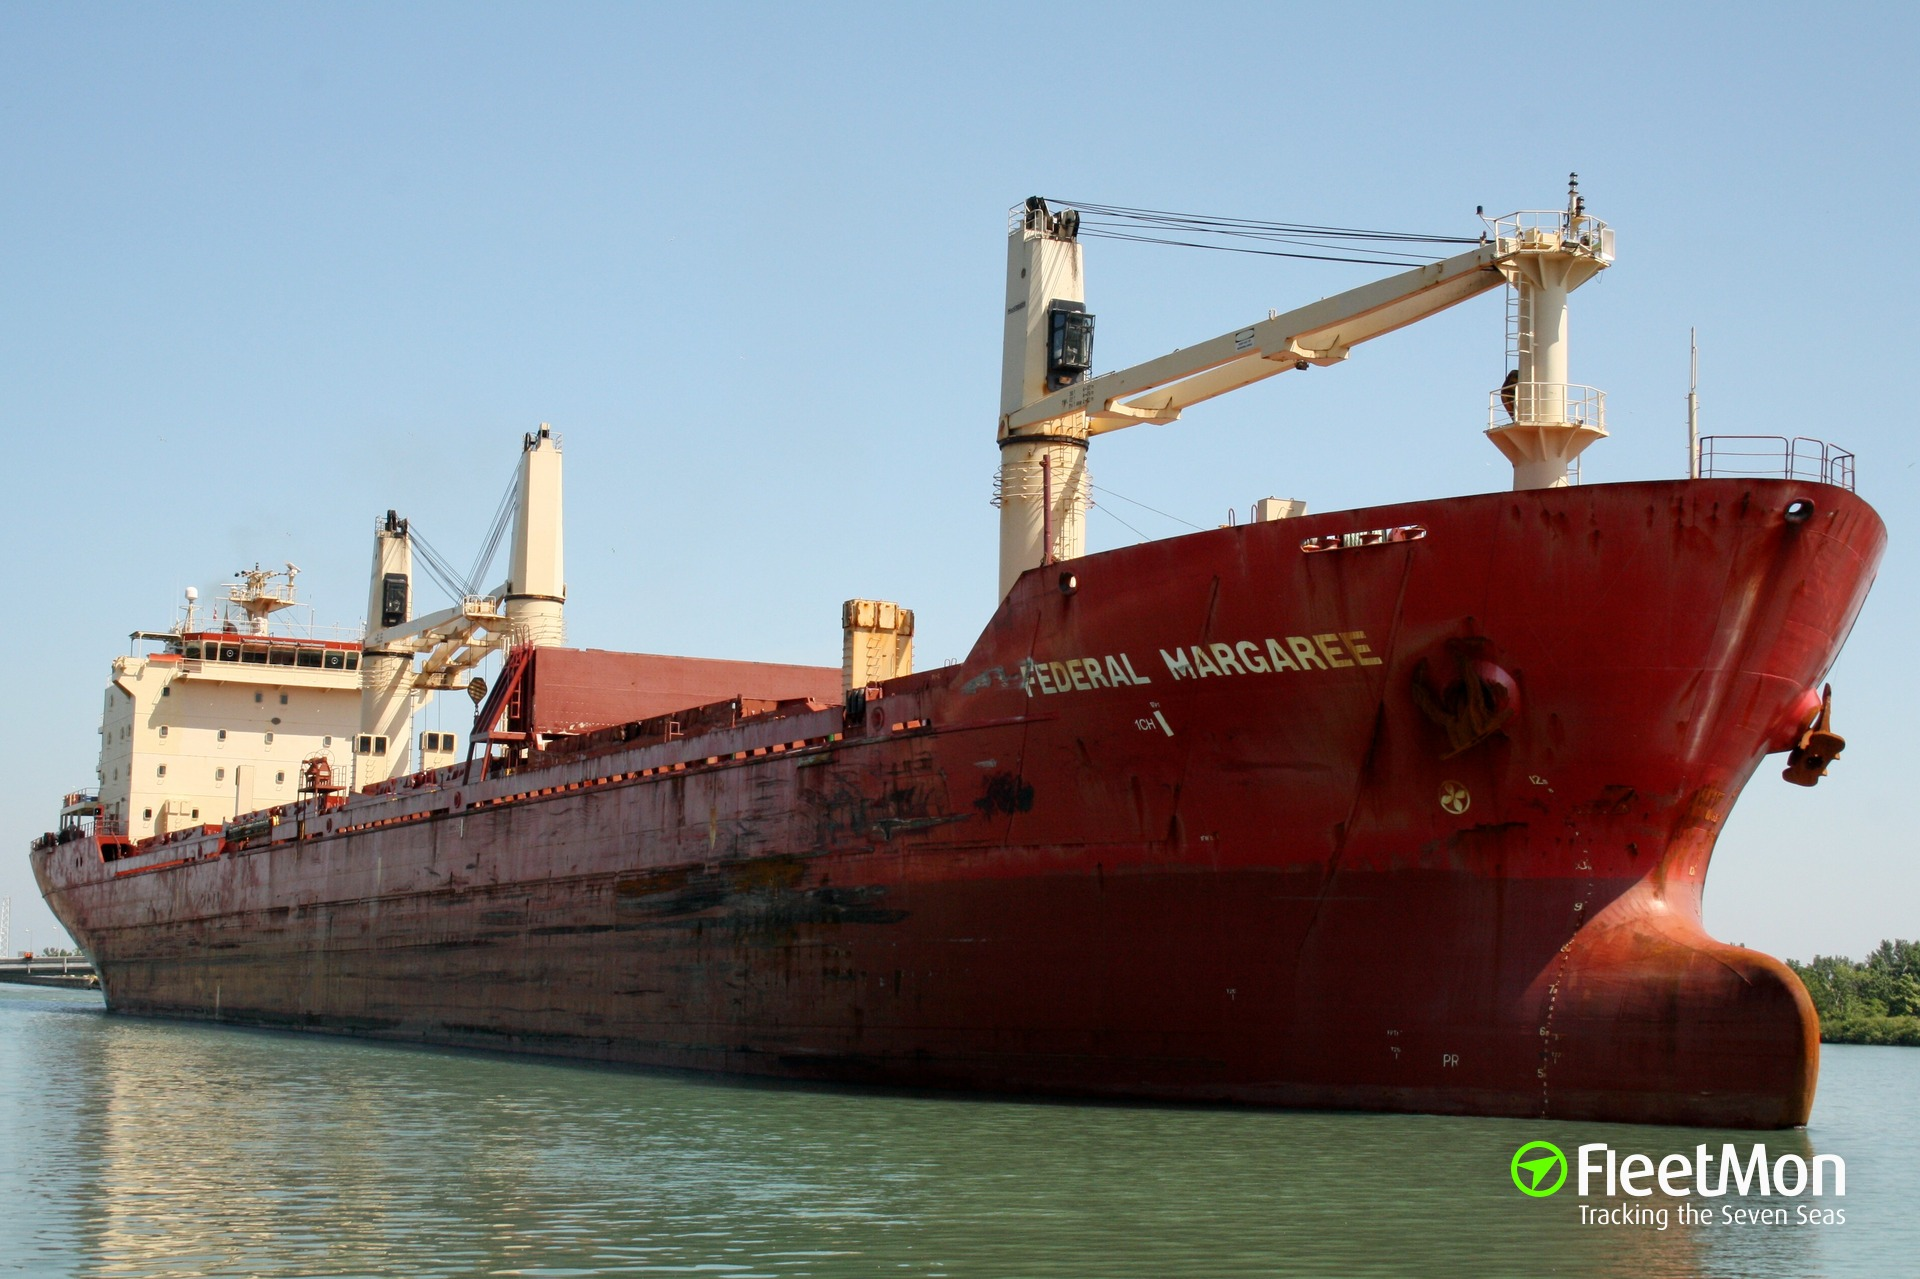 Fire in engine room of bulk carrier Federal Margaree, Great Lakes